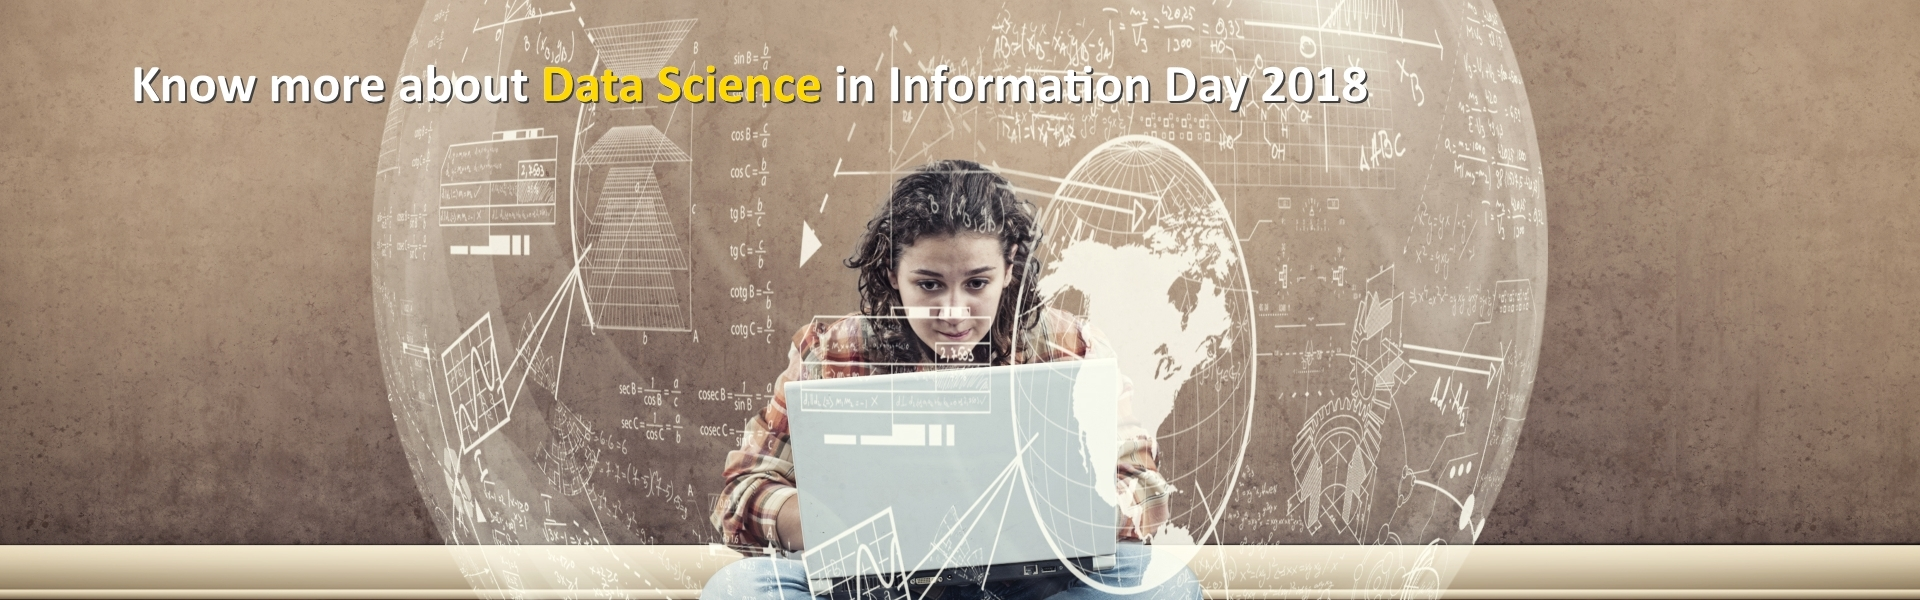 Know more about Data Science in Information Day 2018